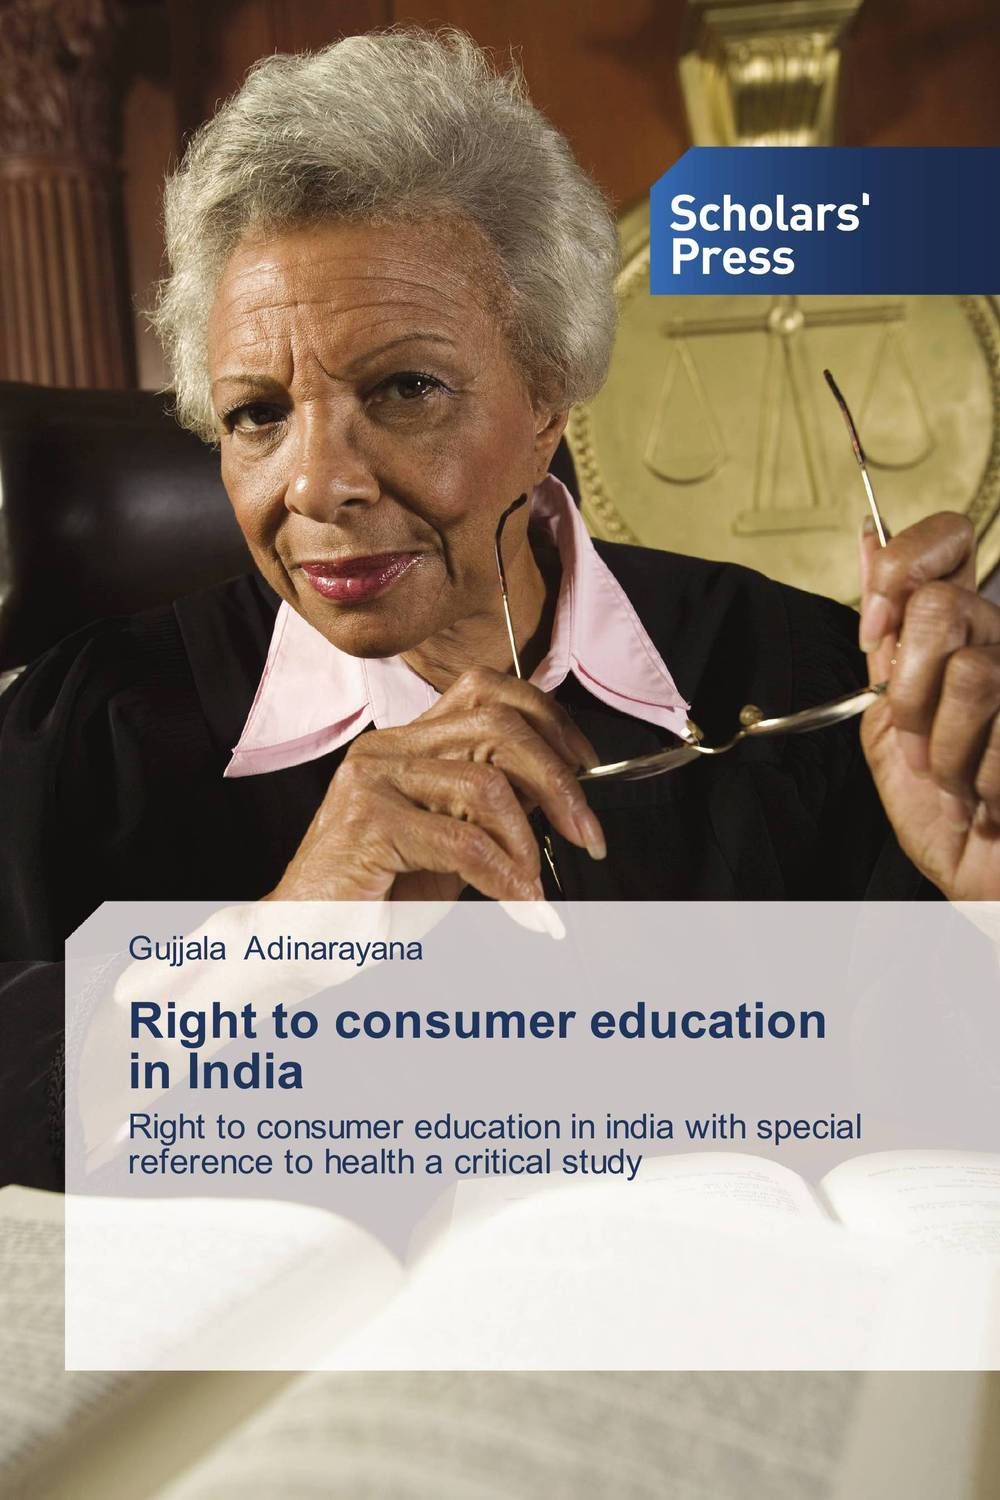 Right to consumer education in India life style health and well being among teenagers